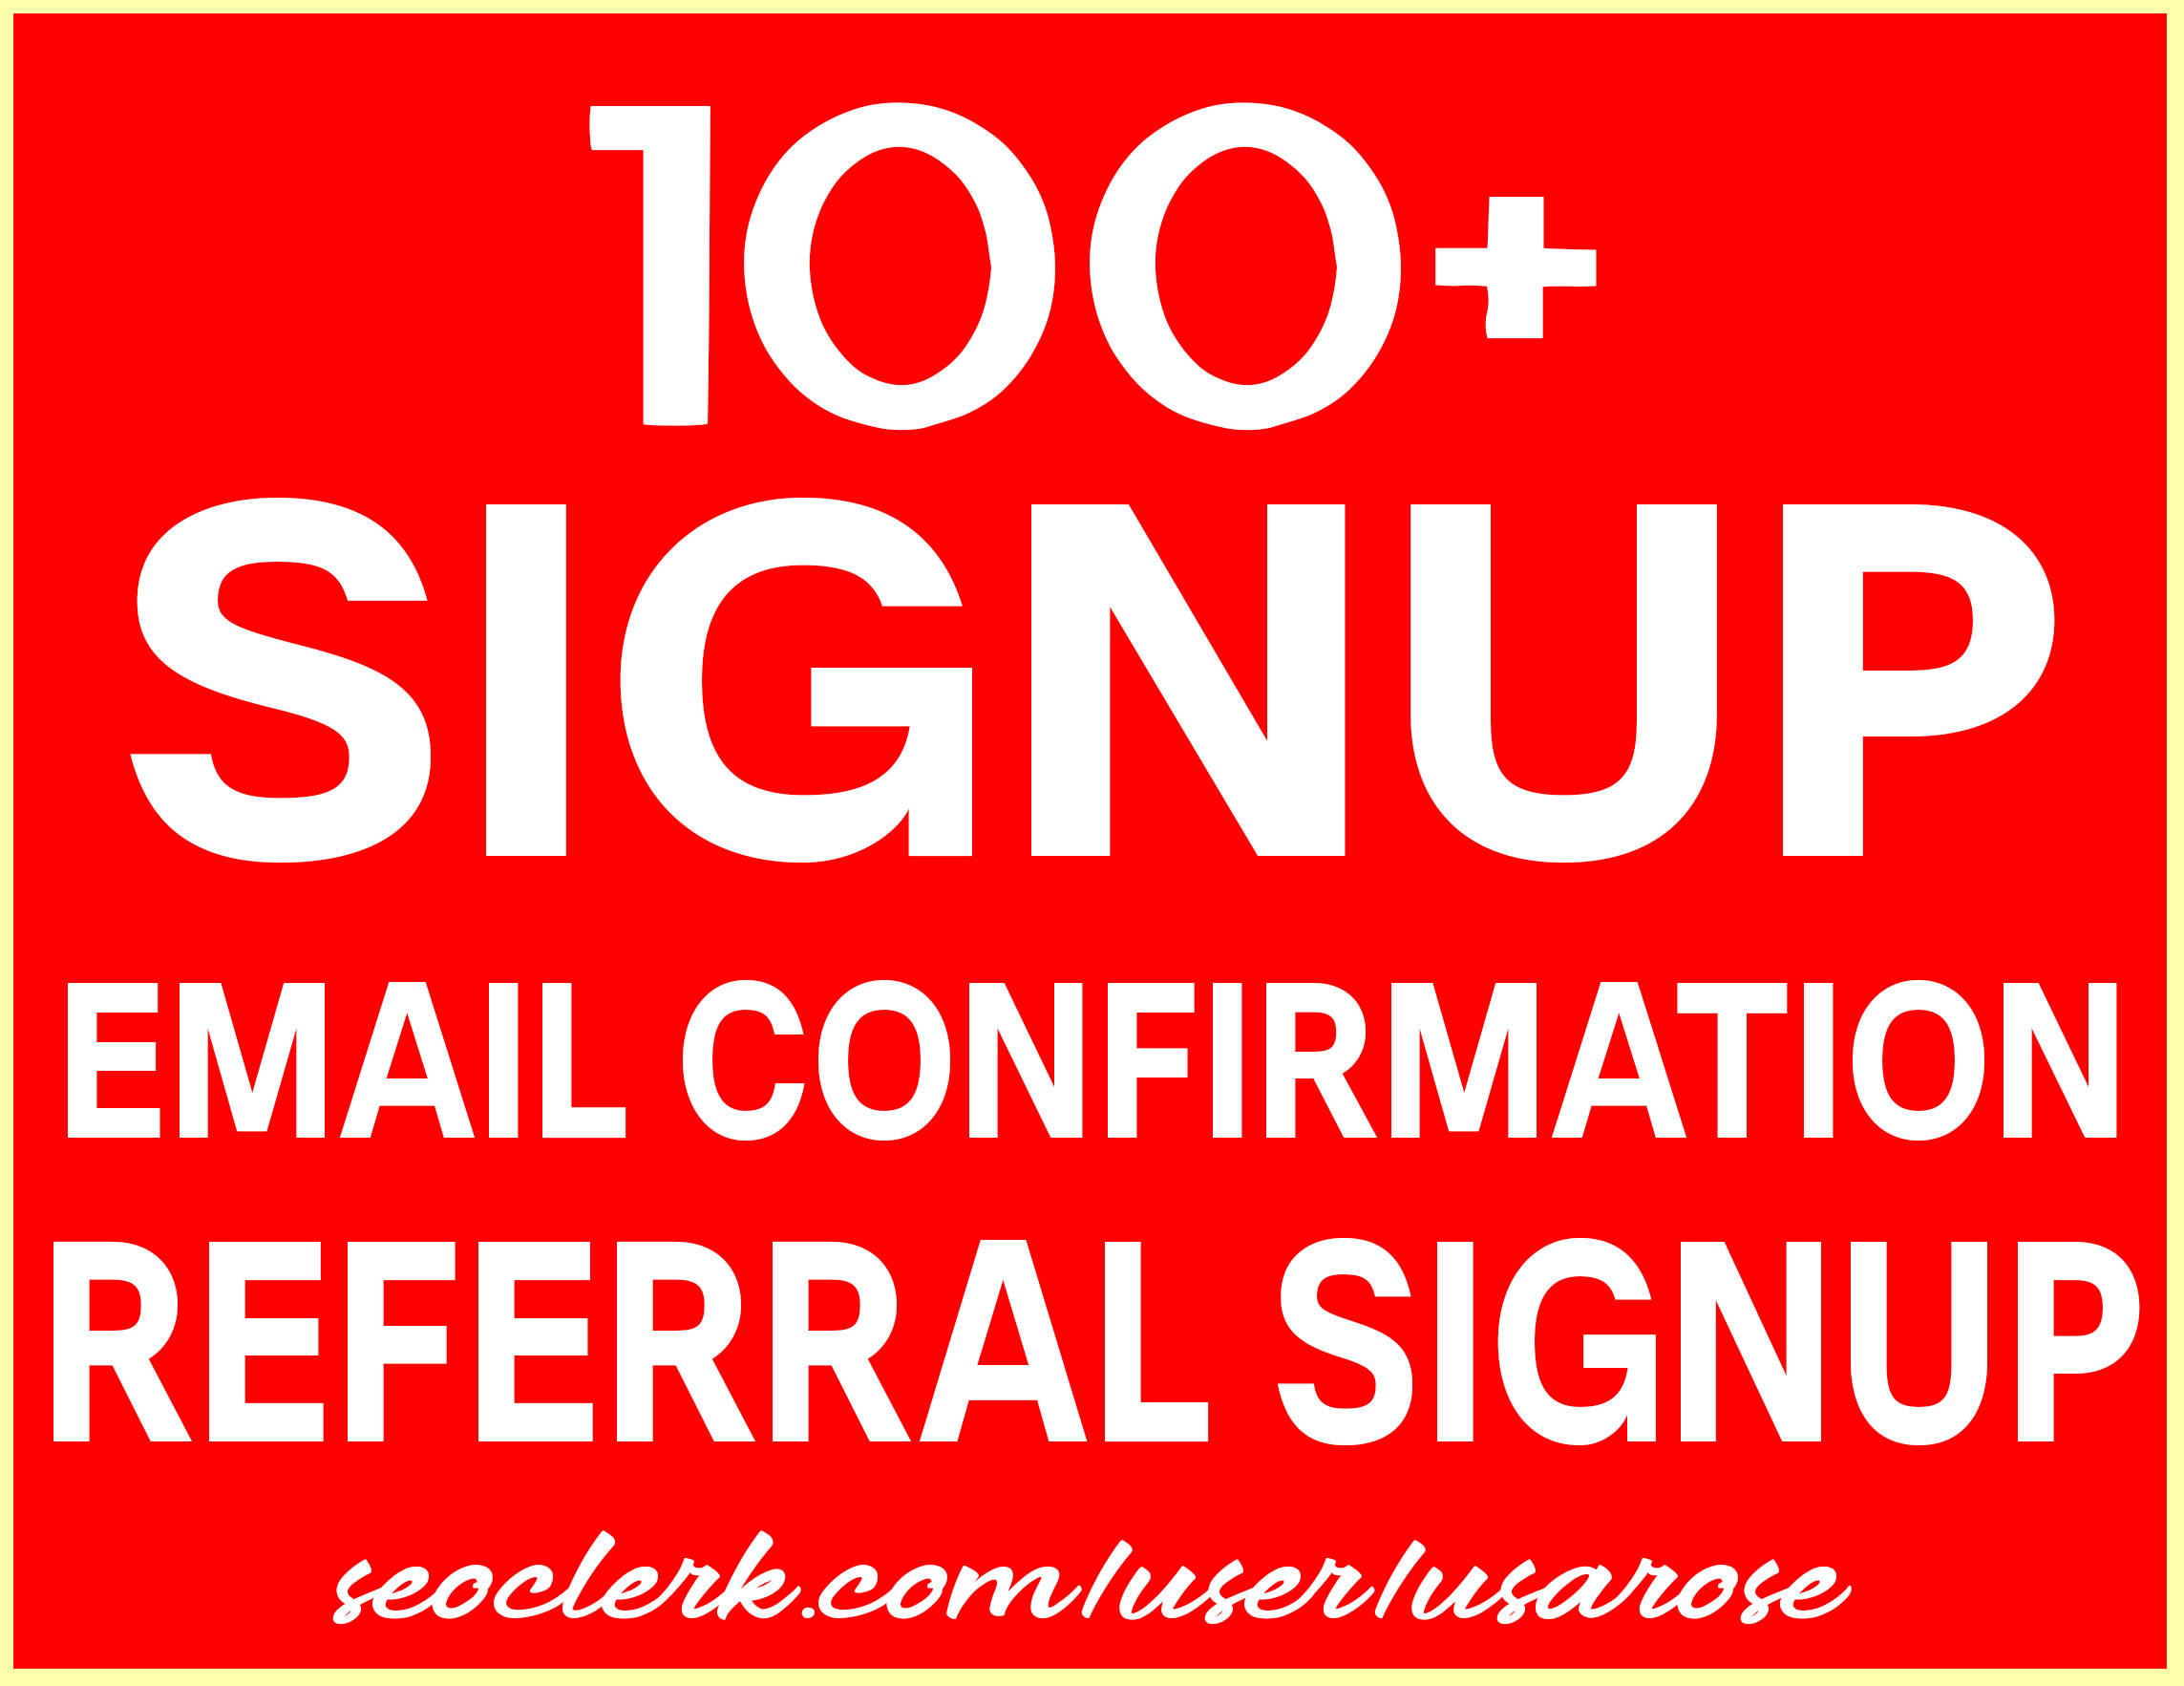 Give You 100+ Signup For Your Referral or Affiliate Website